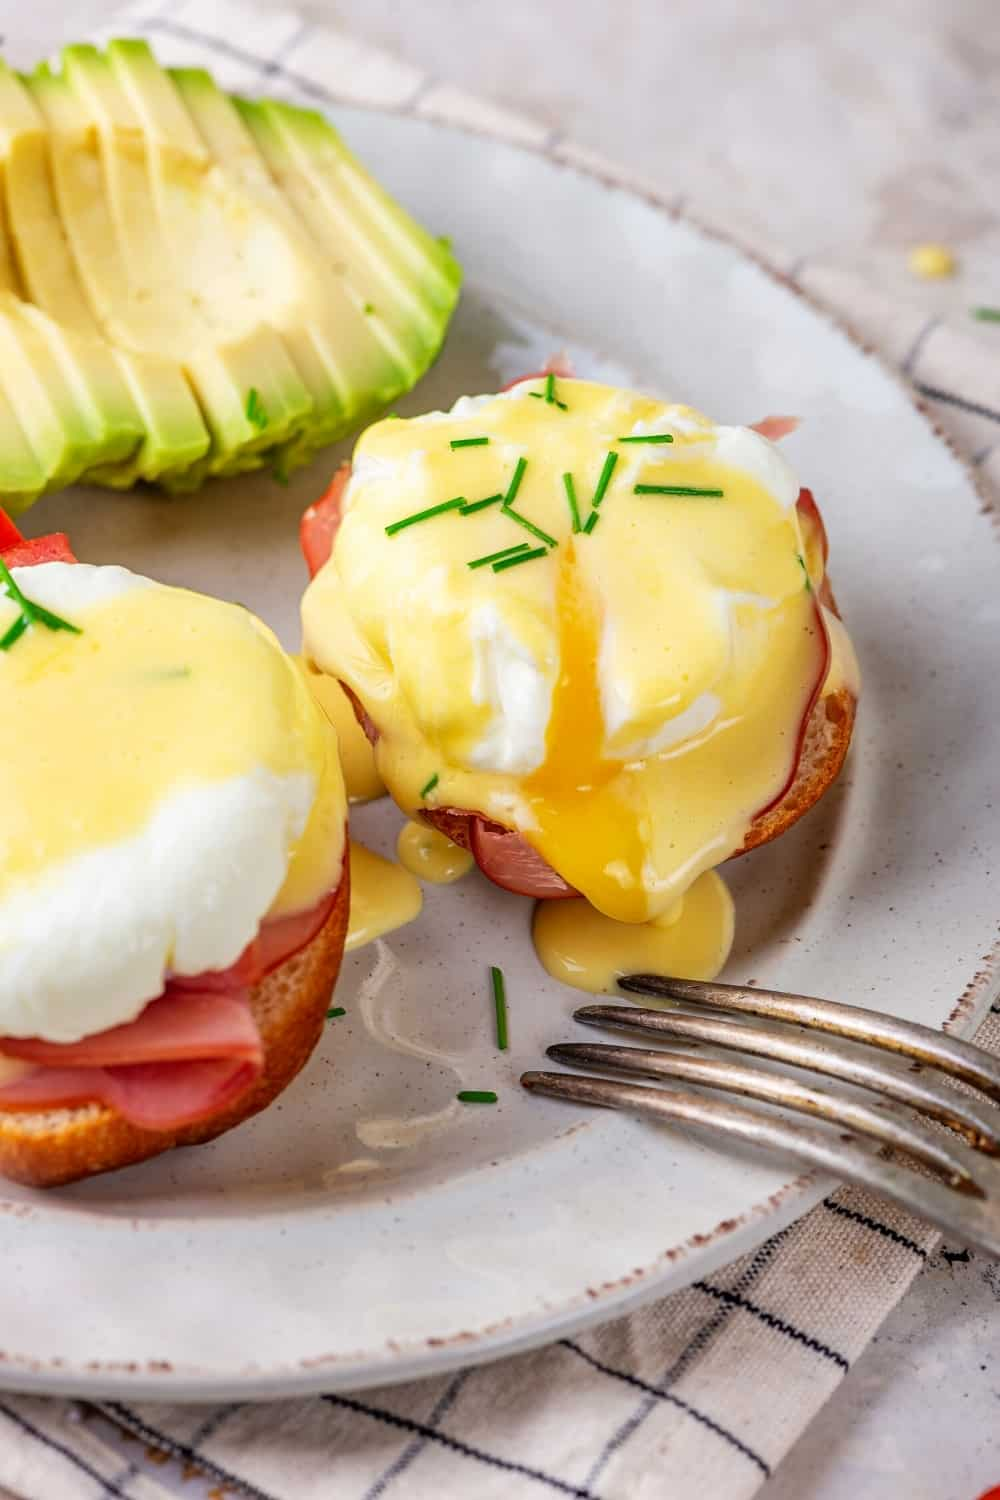 A white plate with the whole eggs Benedict and half of an eggs Benedict. There is a sliced avocado behind the eggs Benedict.